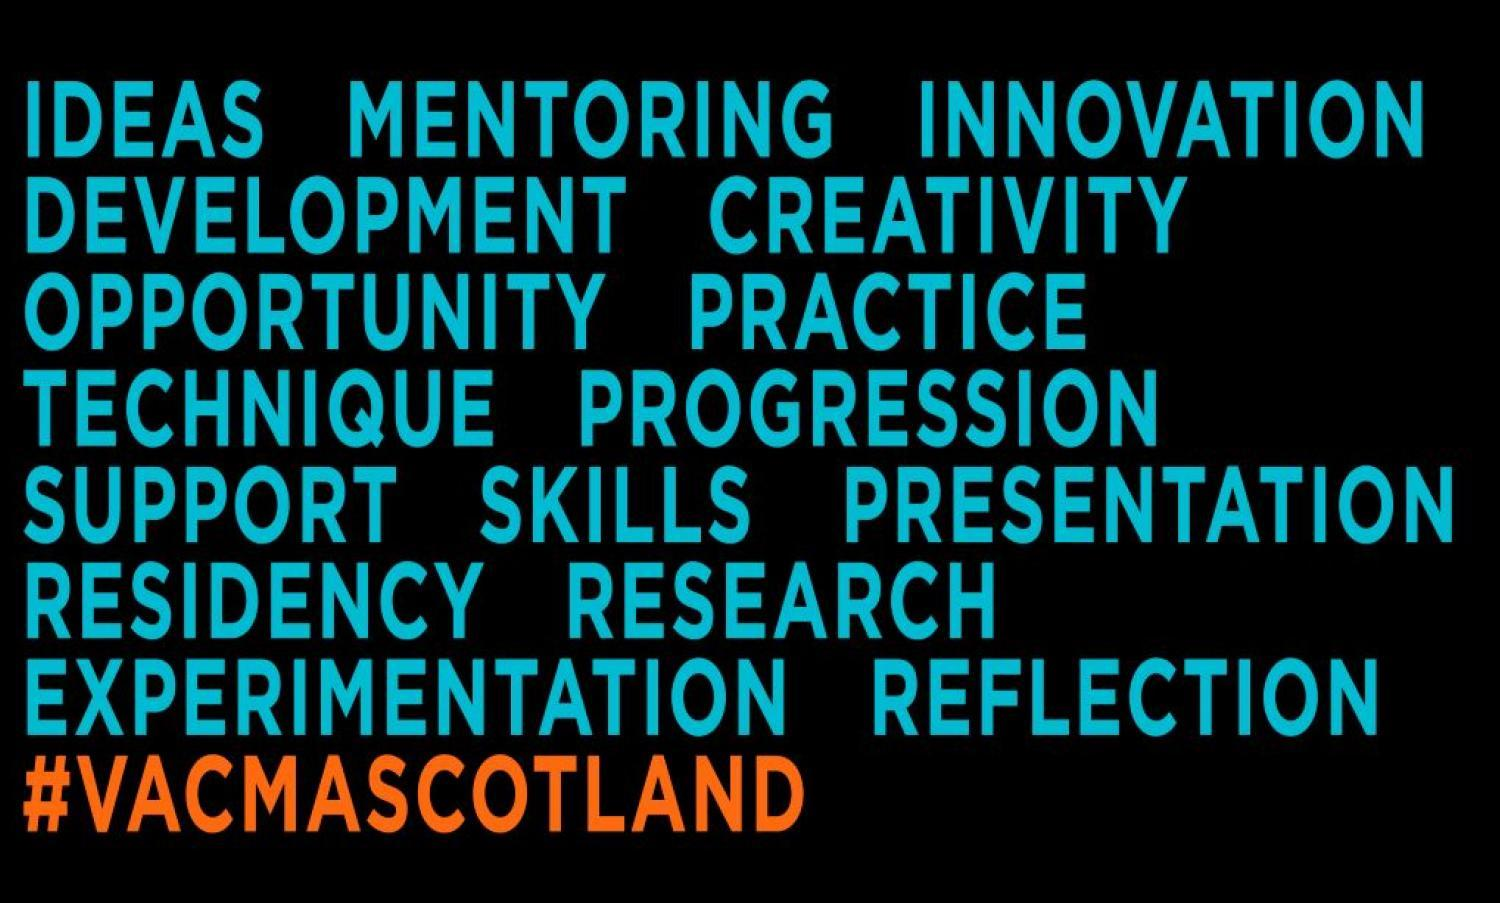 Words that describe things that people can apply to VACMA for e.g Mentoring, experimentation, research.